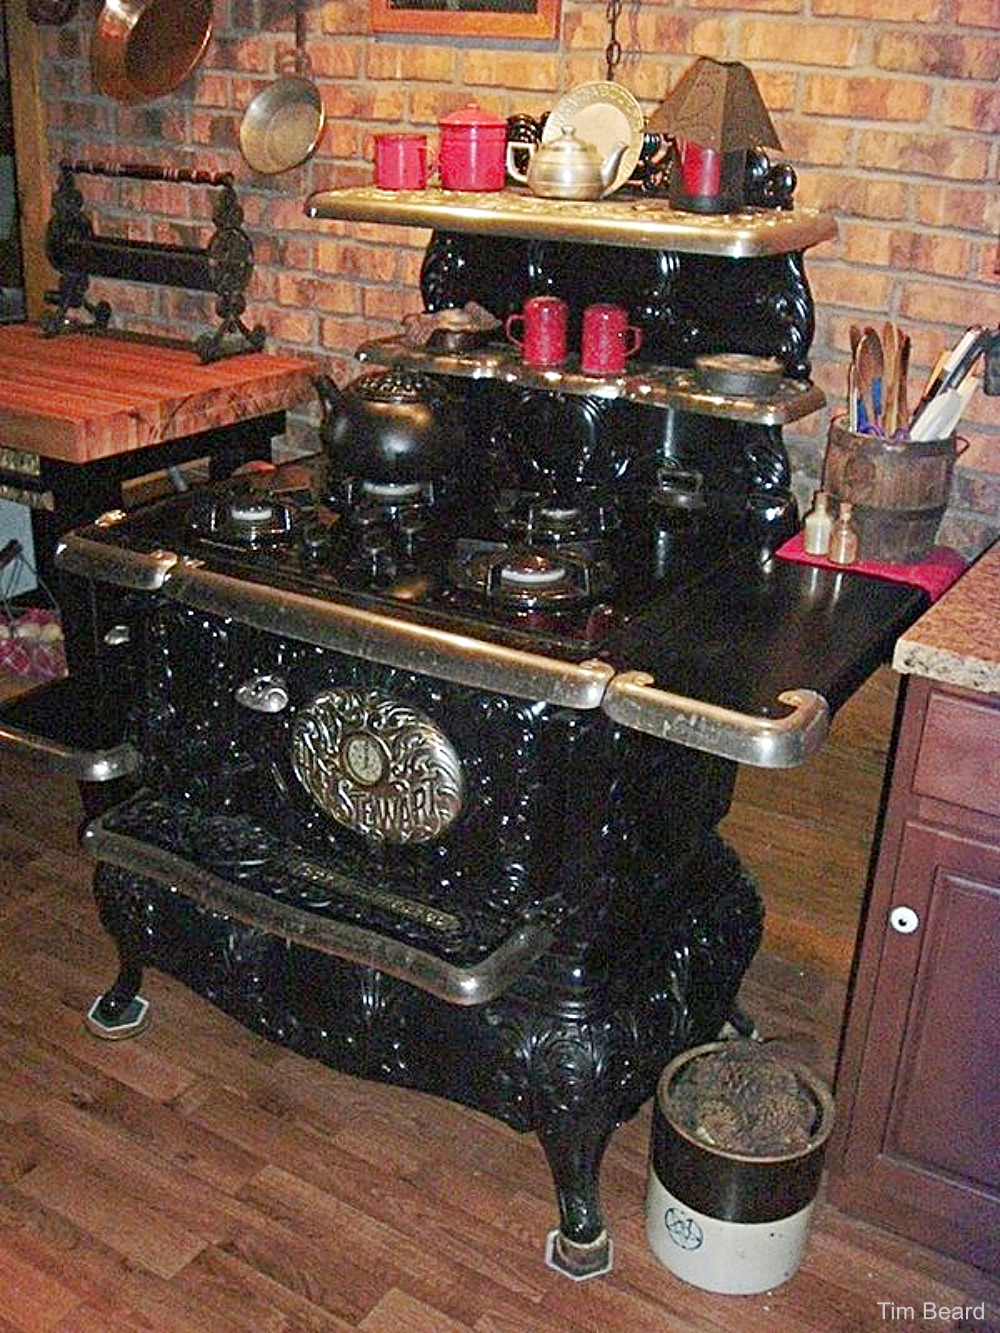 Black Enamel Iron Cook Stove